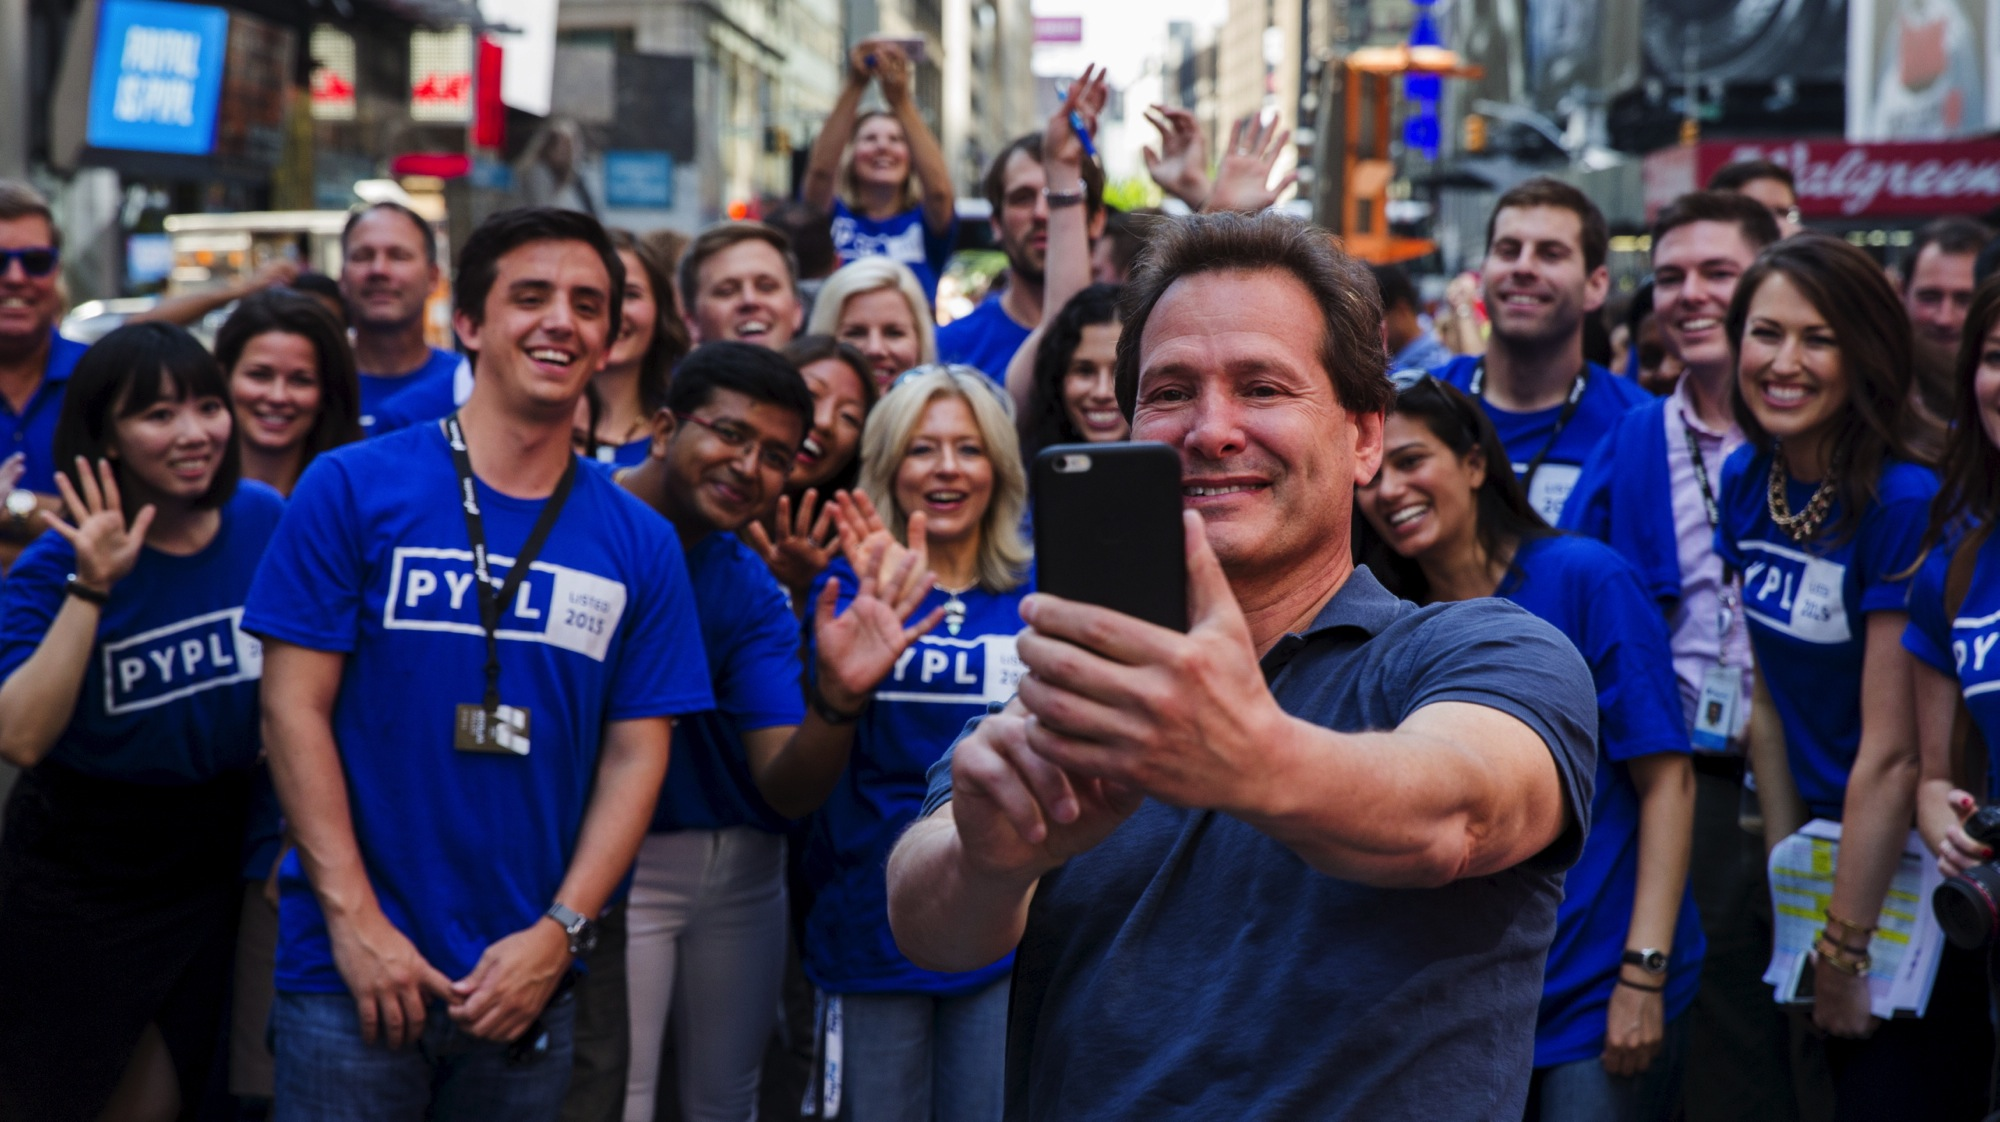 Paypal CEO Dan Schulman (C) celebrates with employees after the company's relisting on the Nasdaq in New York, July 20, 2015.